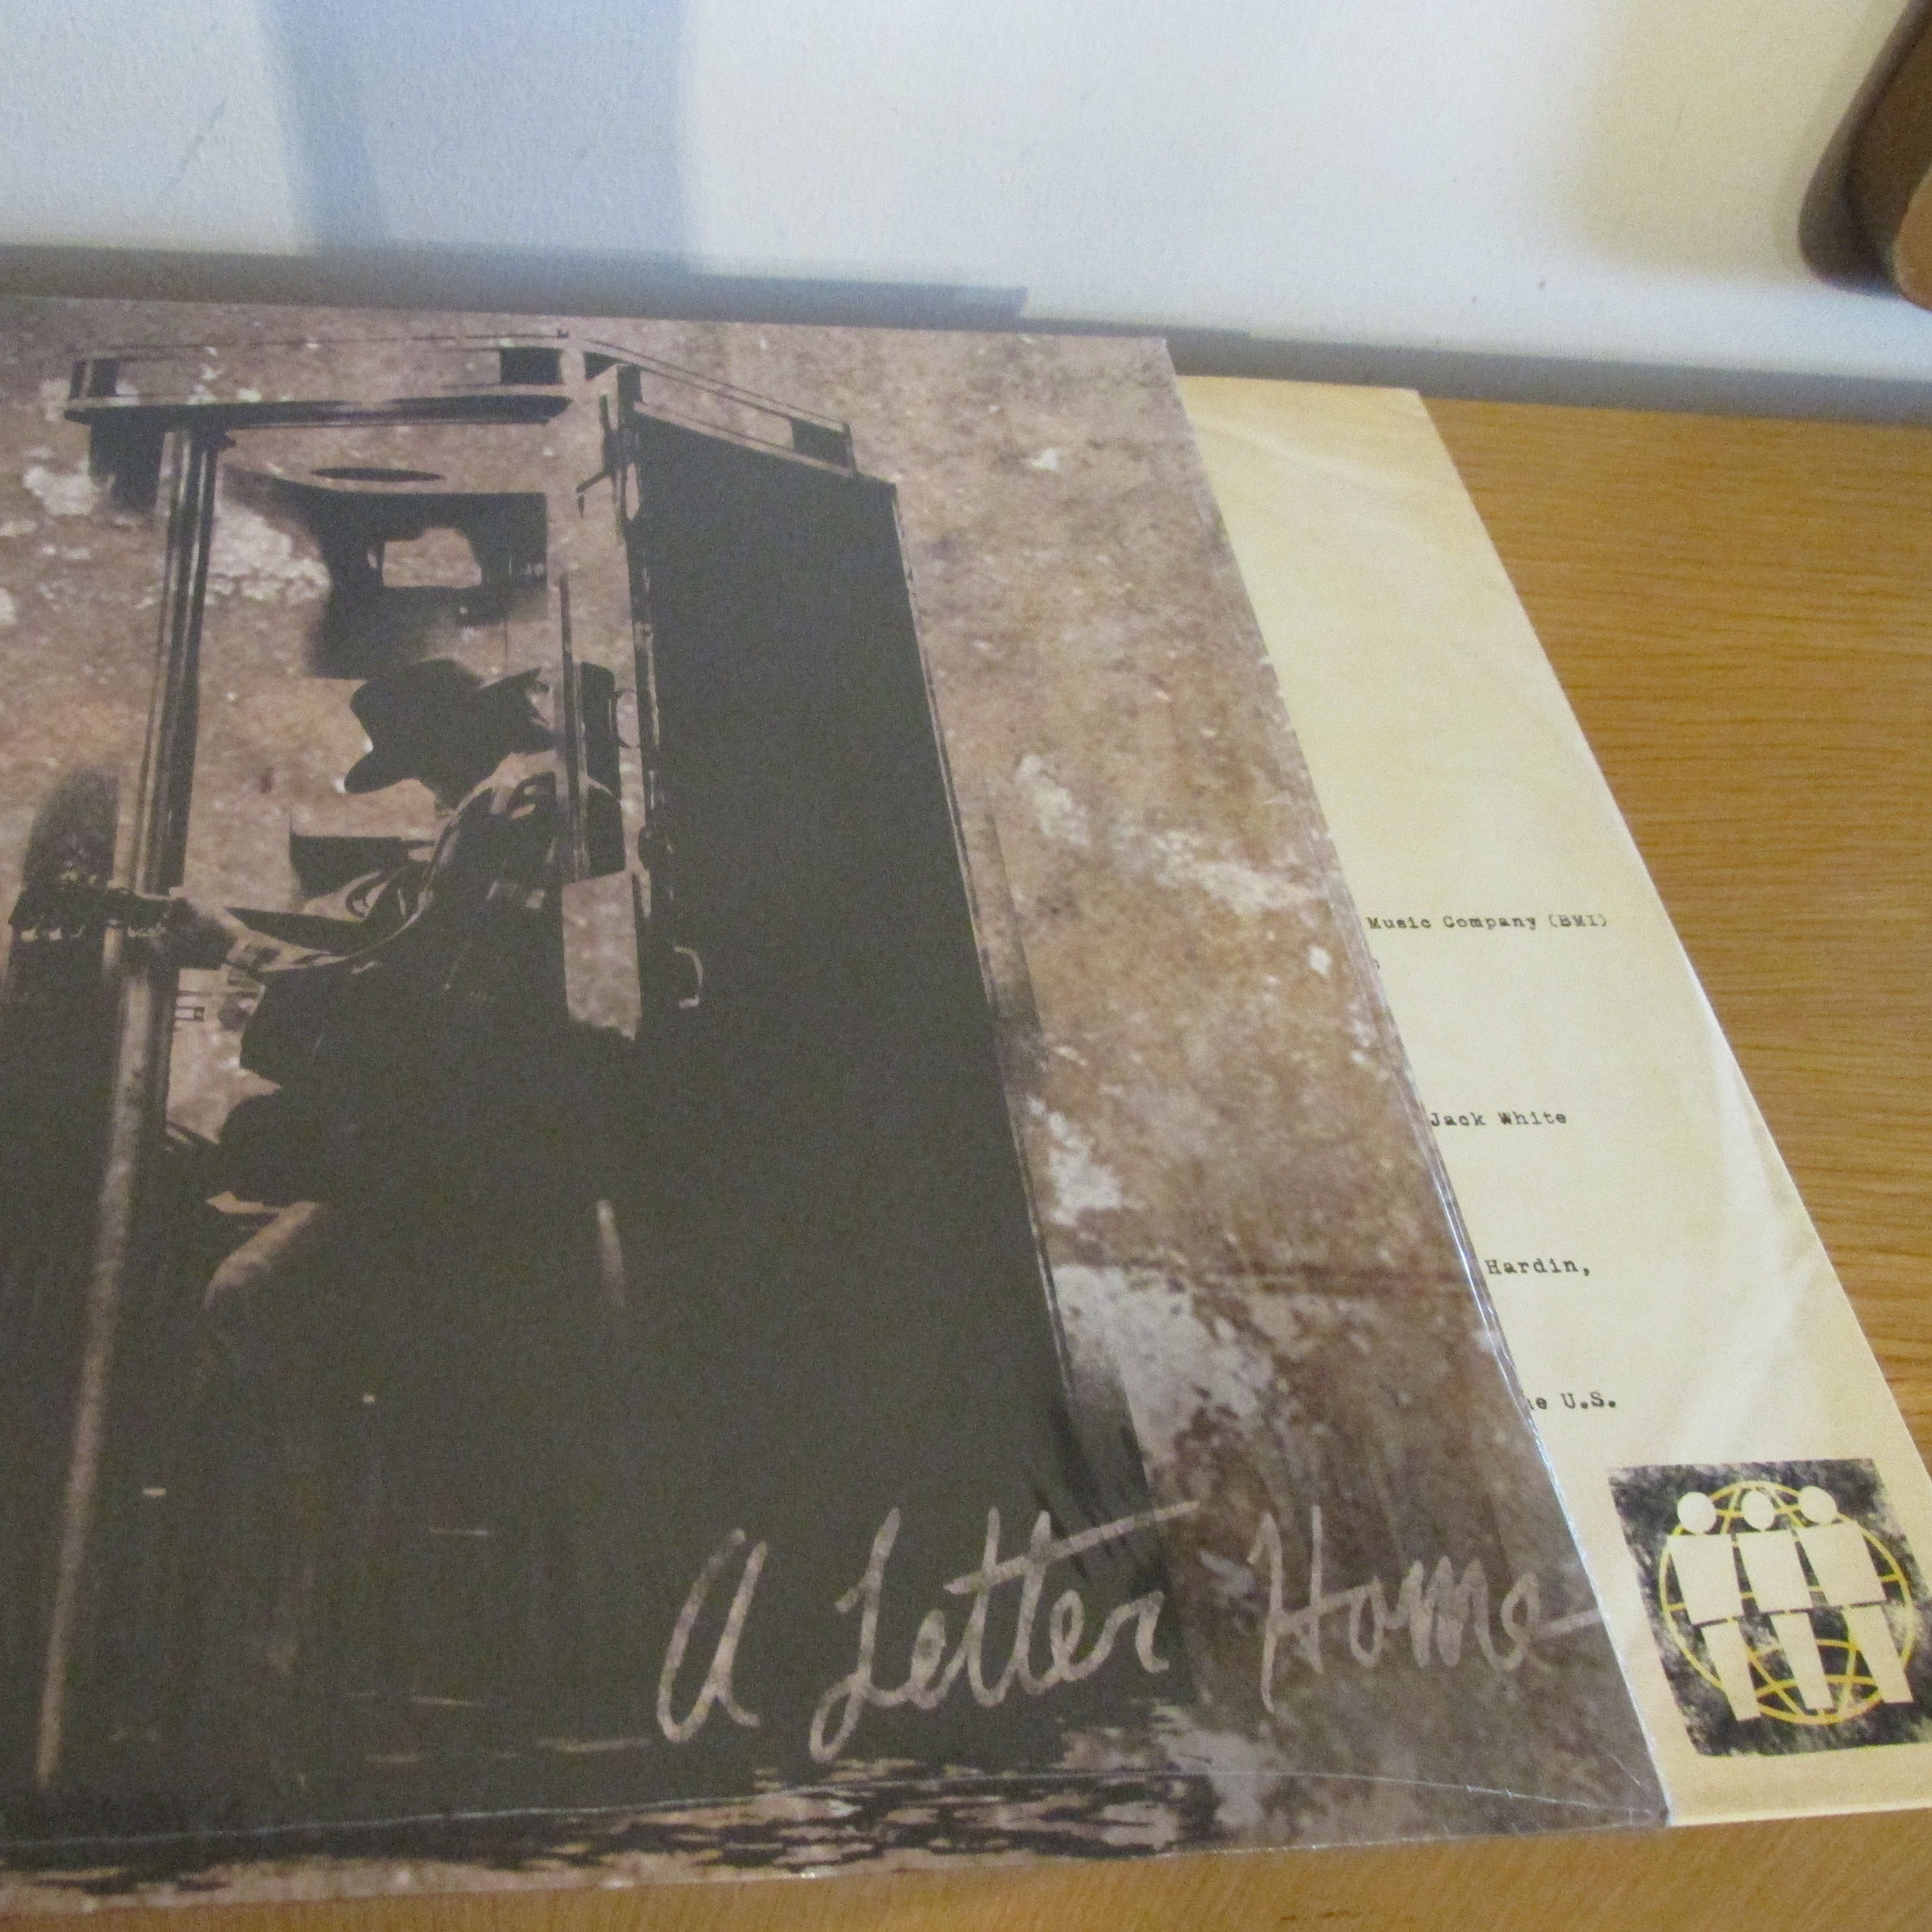 Neil Young A Letter Home LP undefined